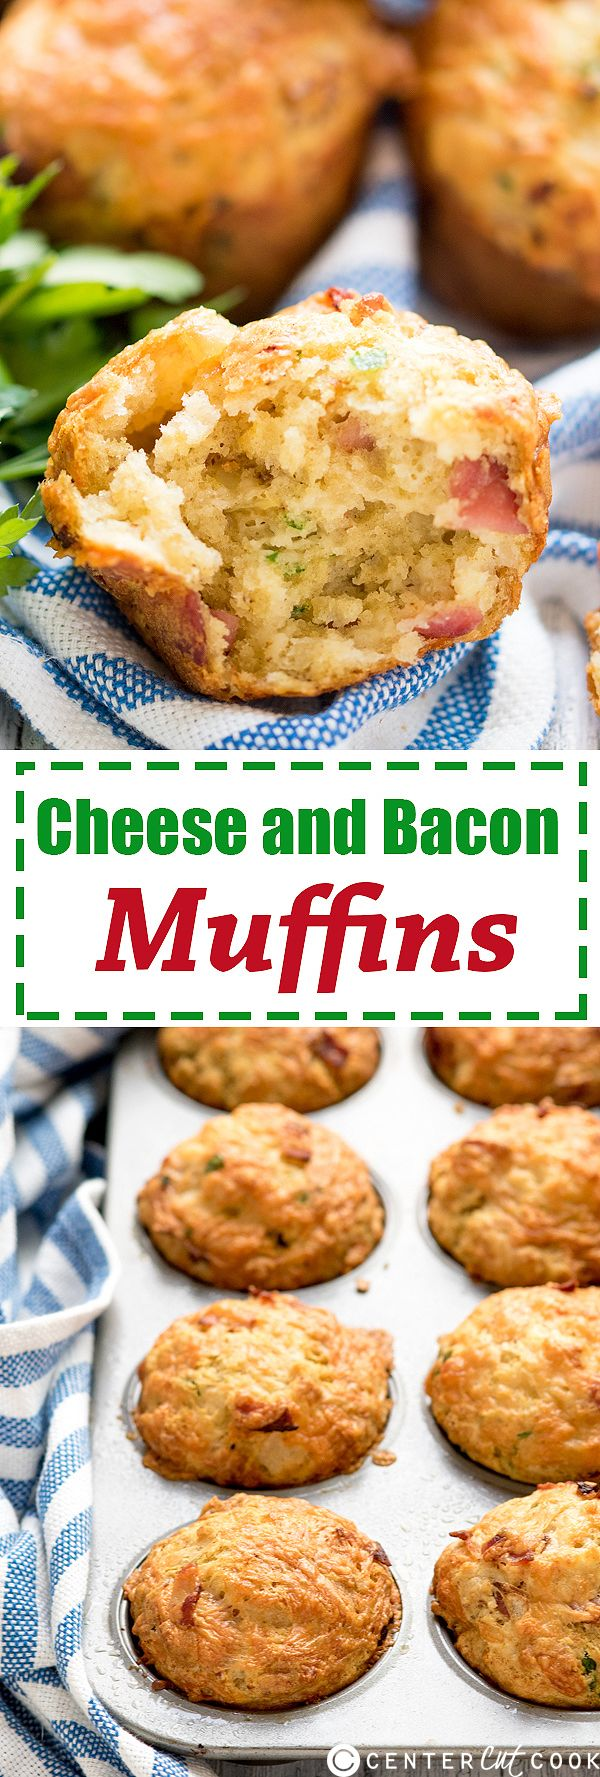 Cheese and bacon muffins - a tasty snack or lunch (kids love them!!)